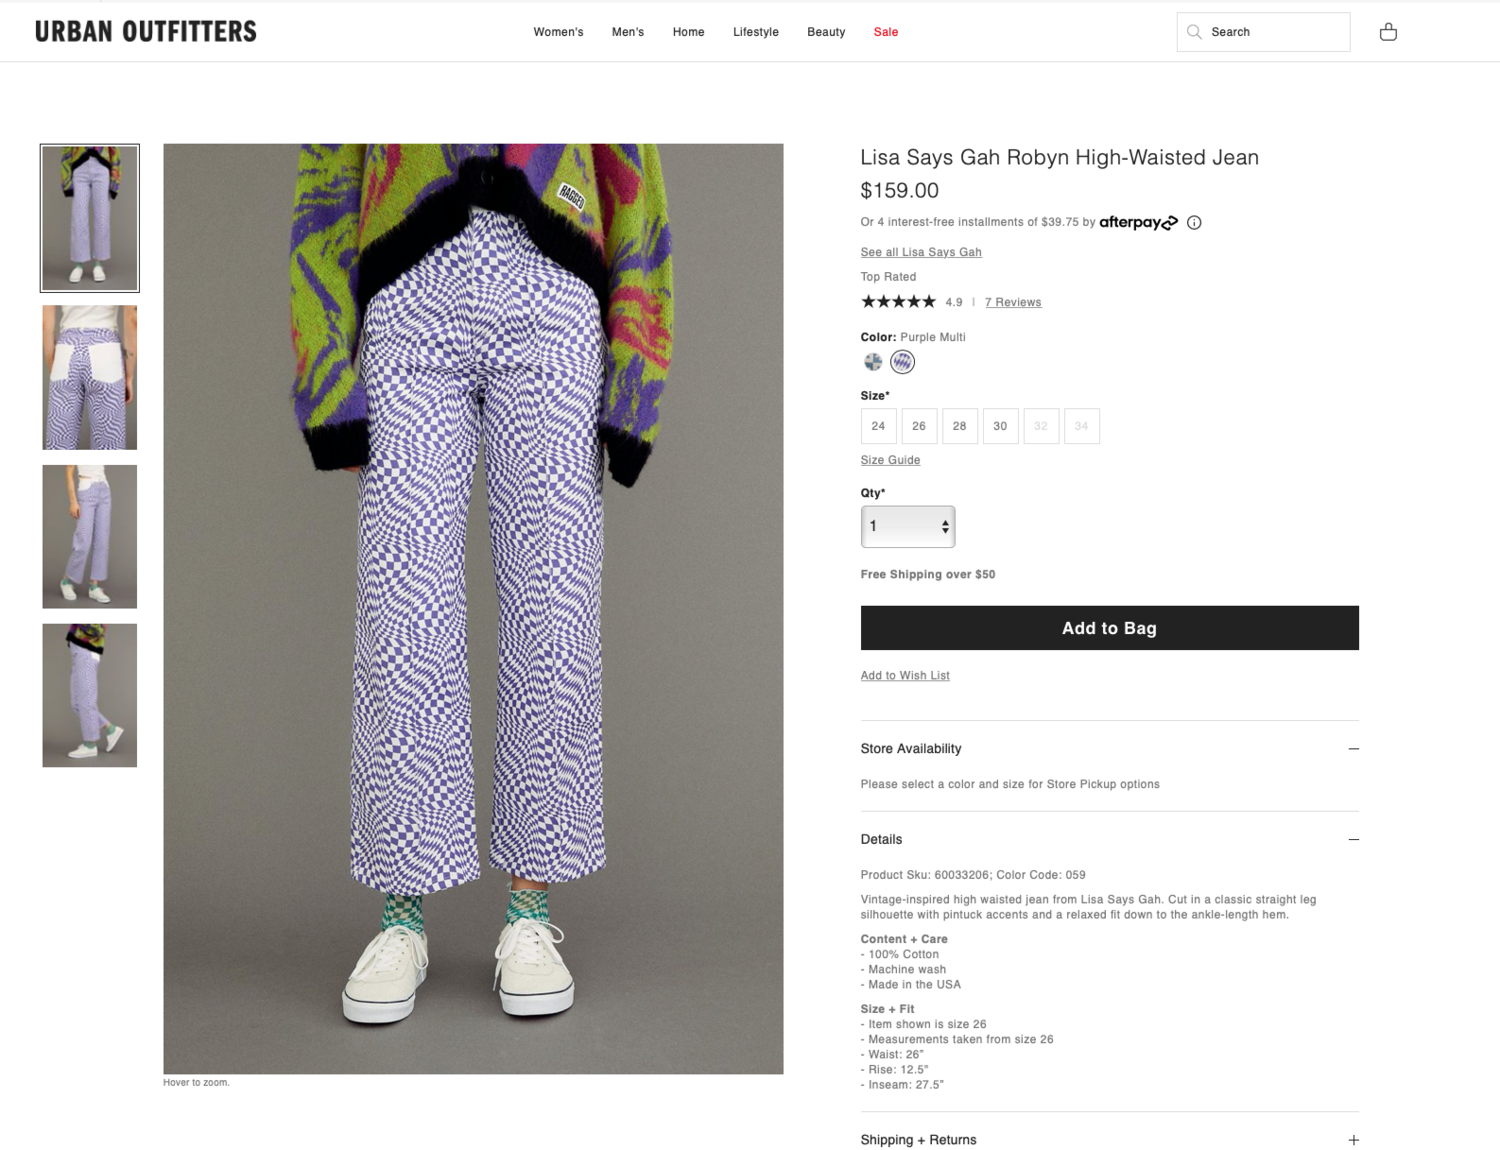 Urban Outfitters product page